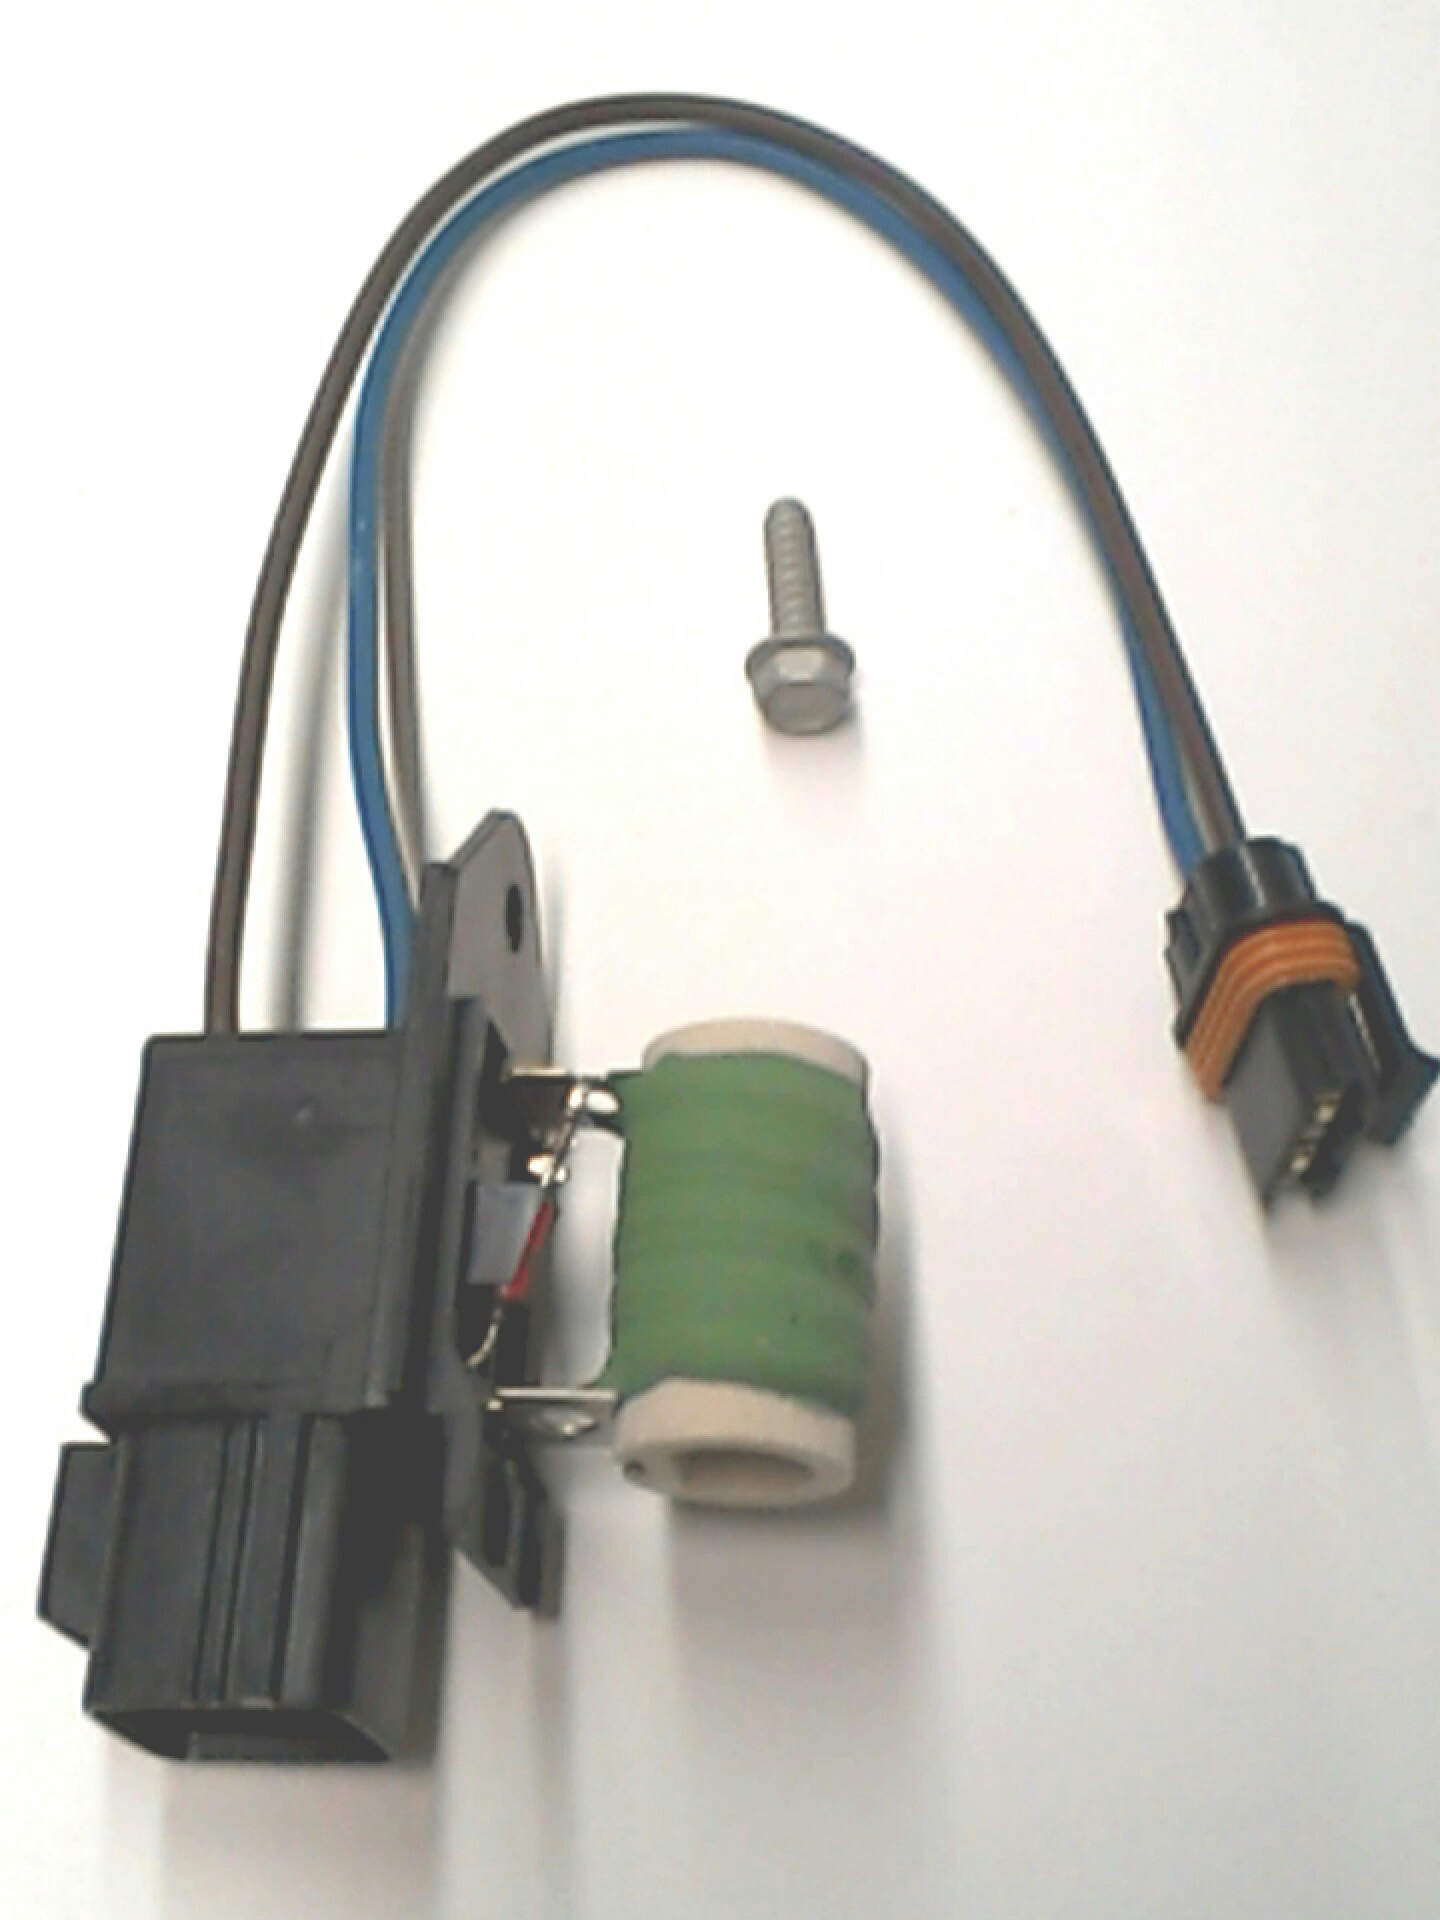 Hemi Mds Solenoid Wire Harness Replacement 42 Wiring Diagram Dodge Challenger On 1967 Chrysler 300 Fan Motor